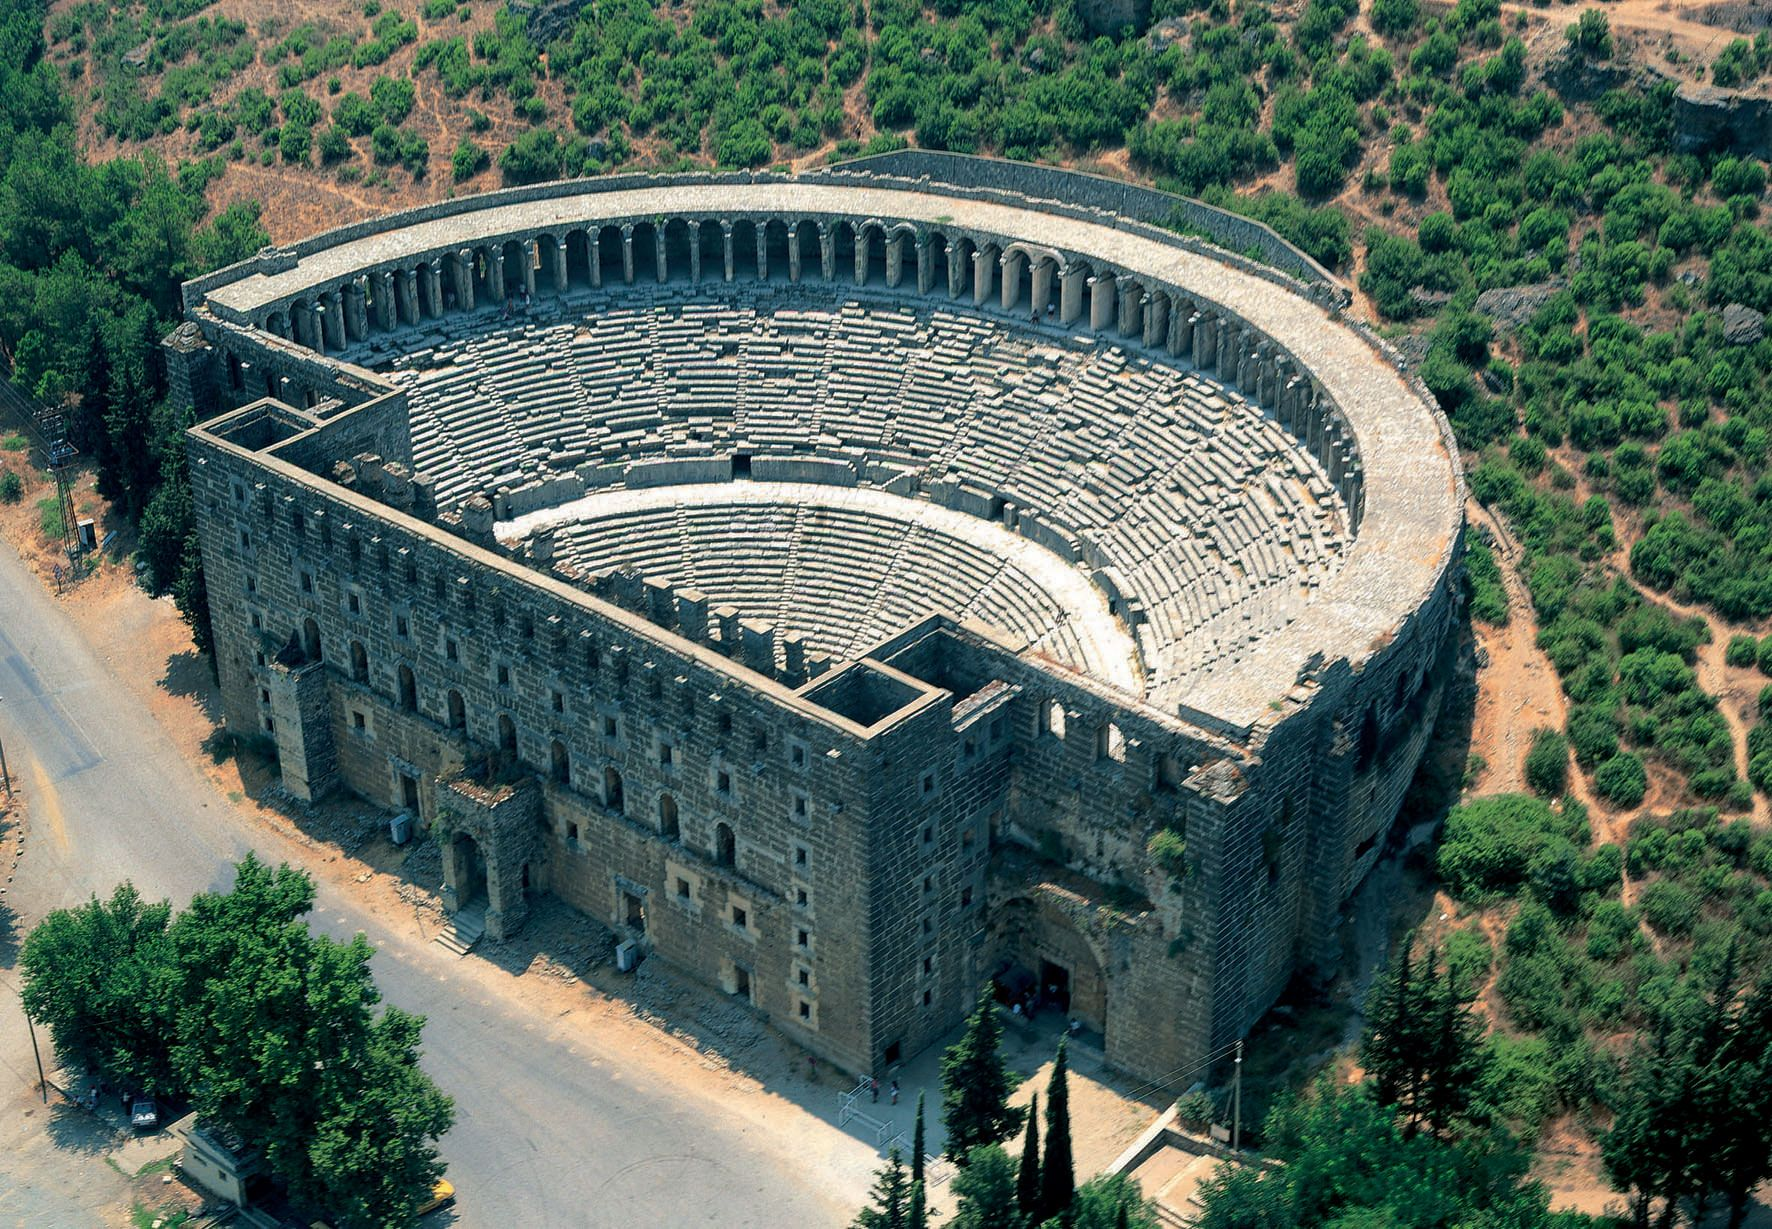 Top 10 Most Ancient Ruins in Turkey | Turkey travel, Ancient ruins ...